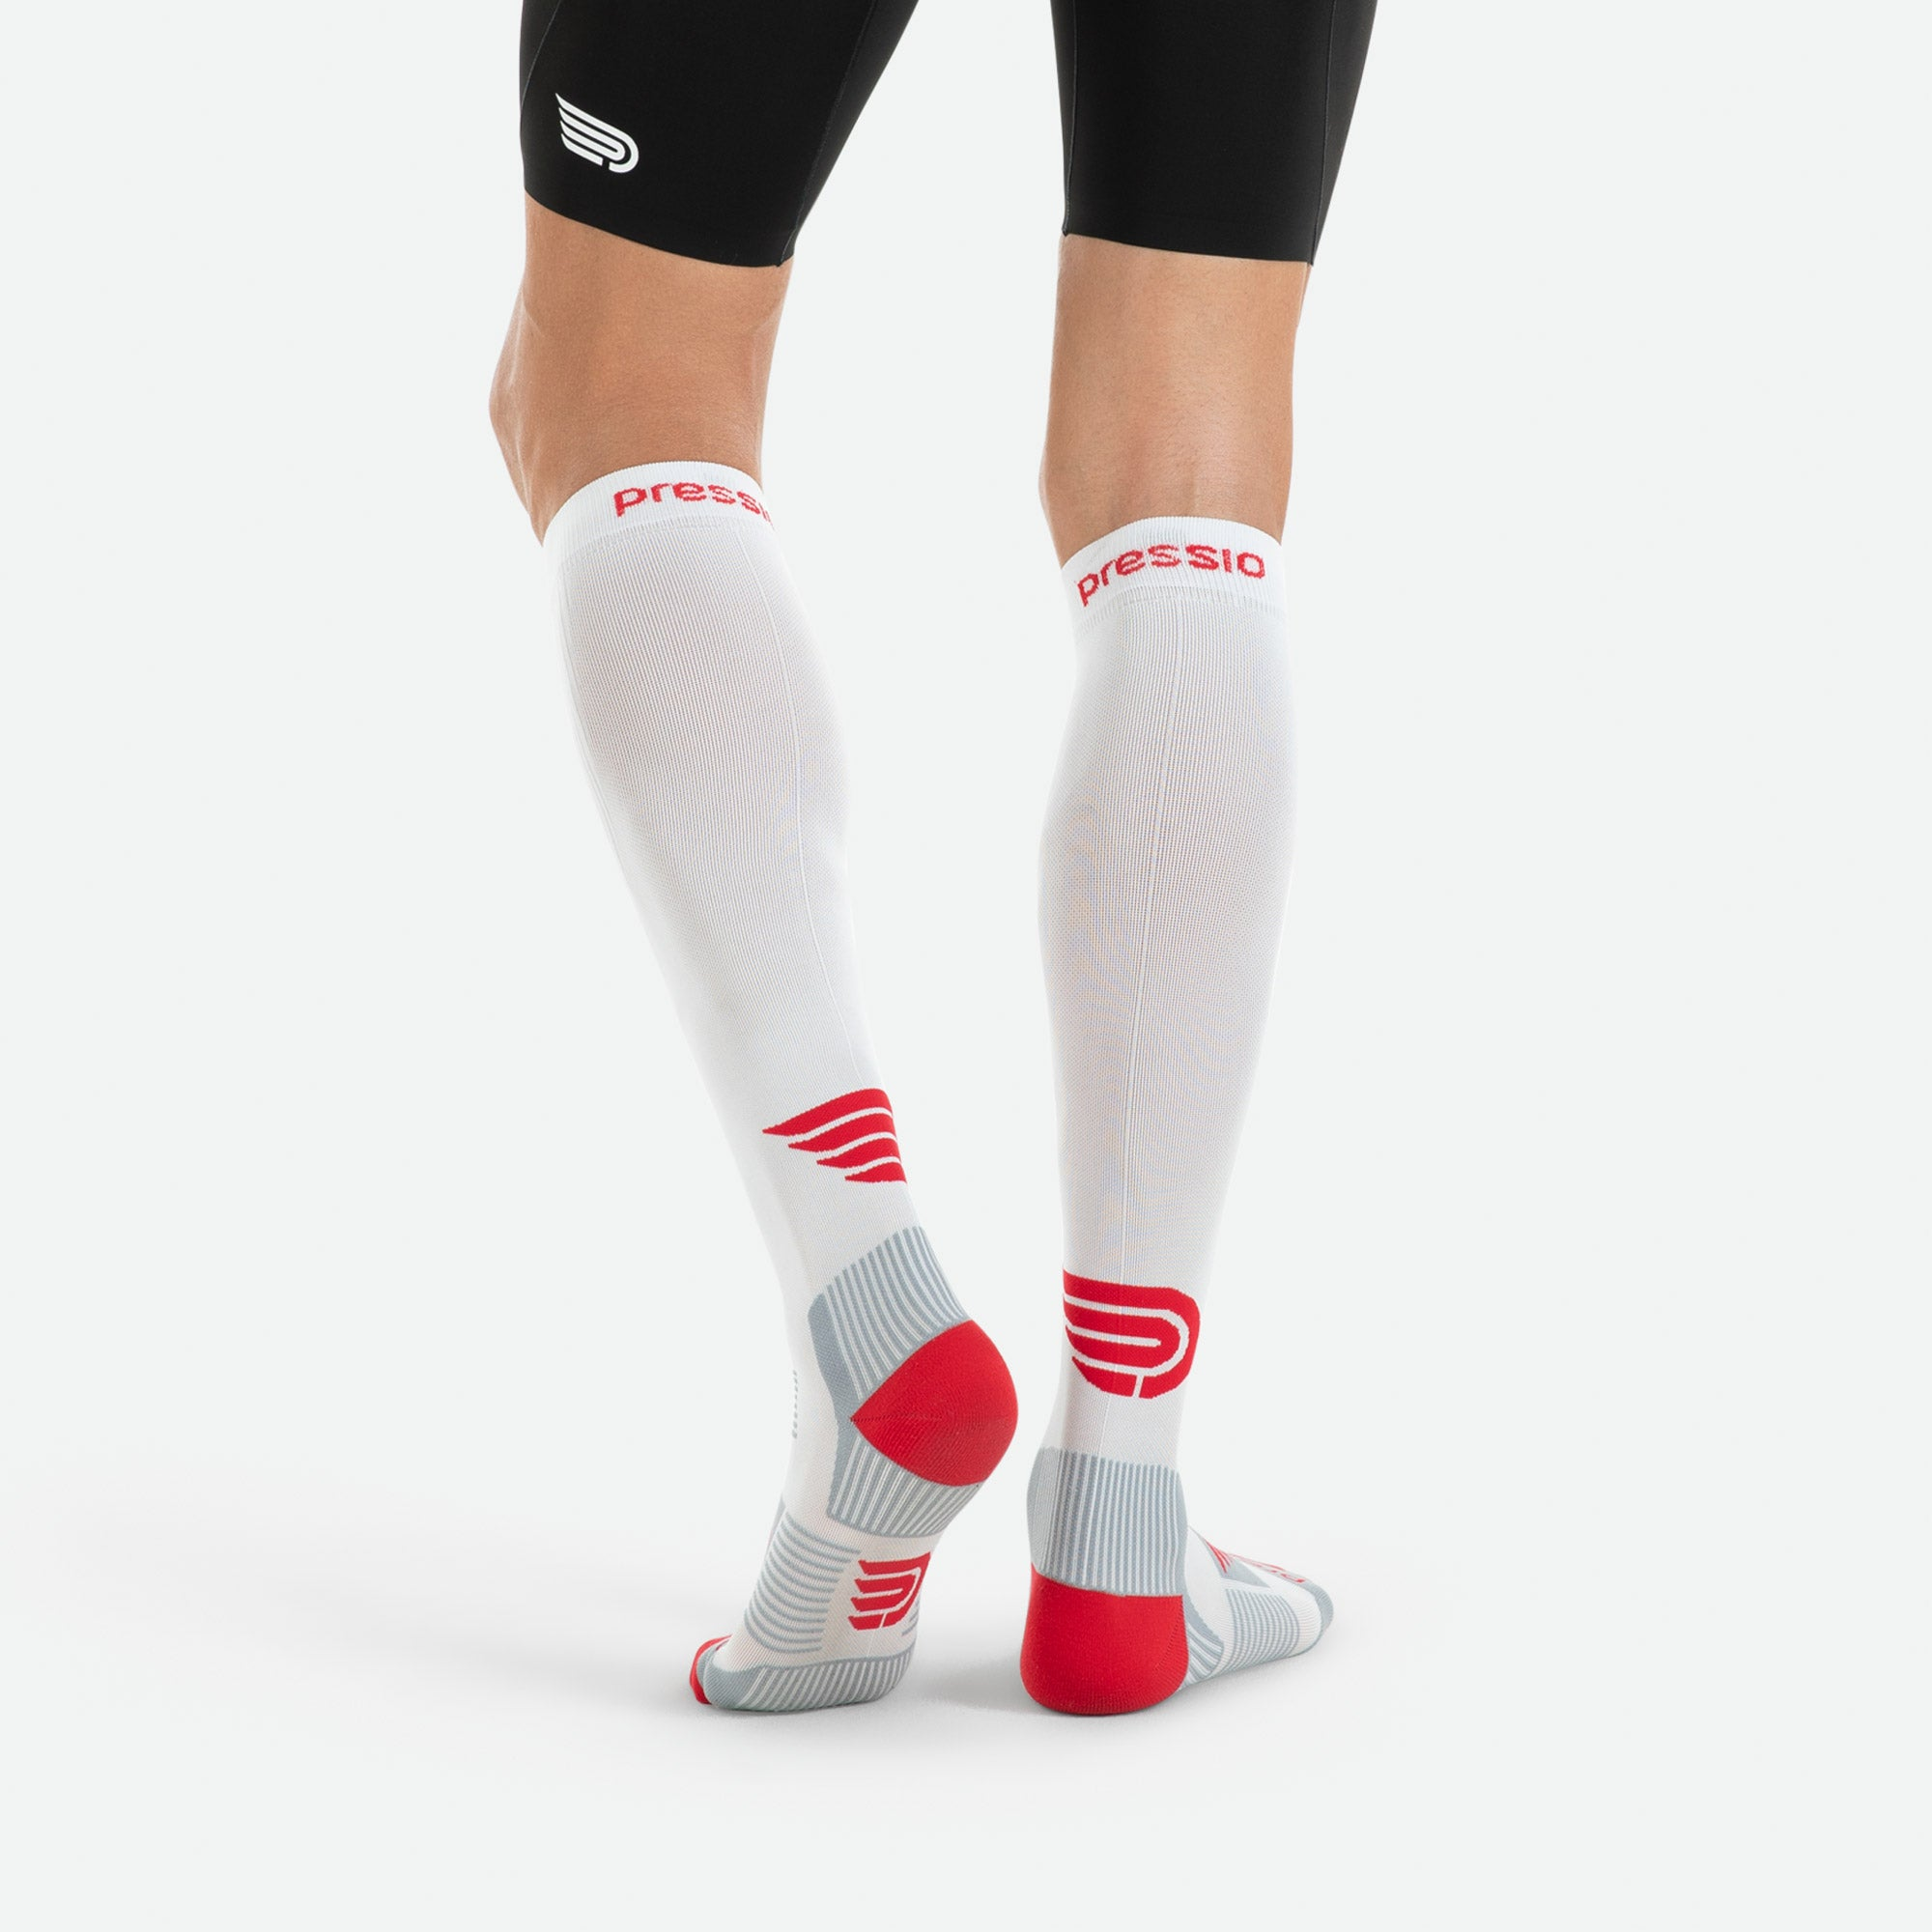 Our Pressio white compression socks are made of Econyl recycled nylon 6.6 yarns which are derived from recovered fishing nets, pre-and-post fabric offcuts, and disused carpets.